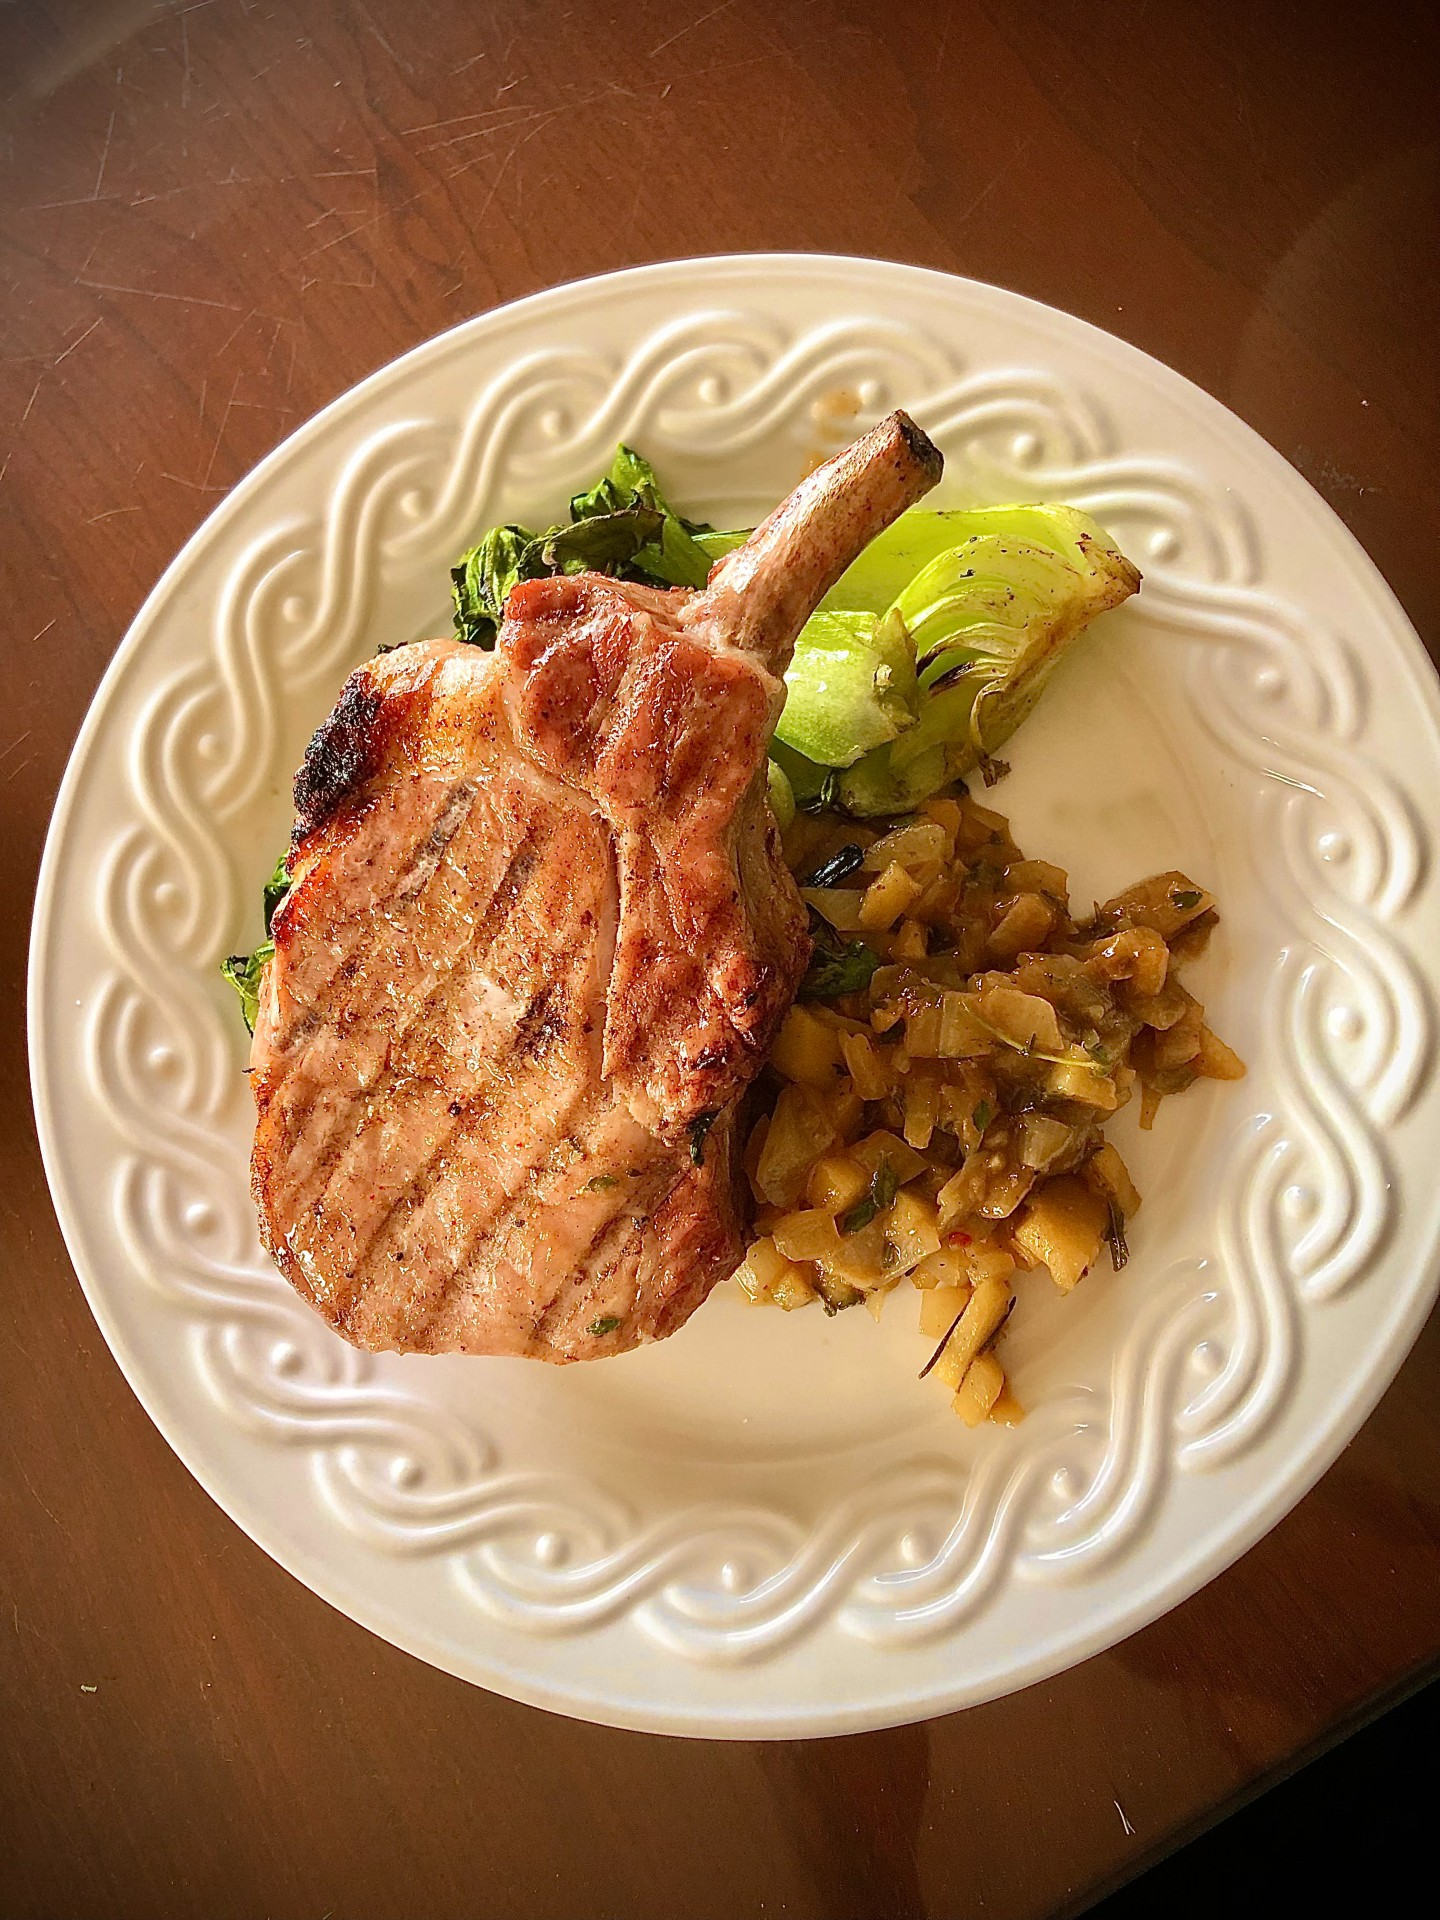 Tips for Juicy Grilled Pork Chops